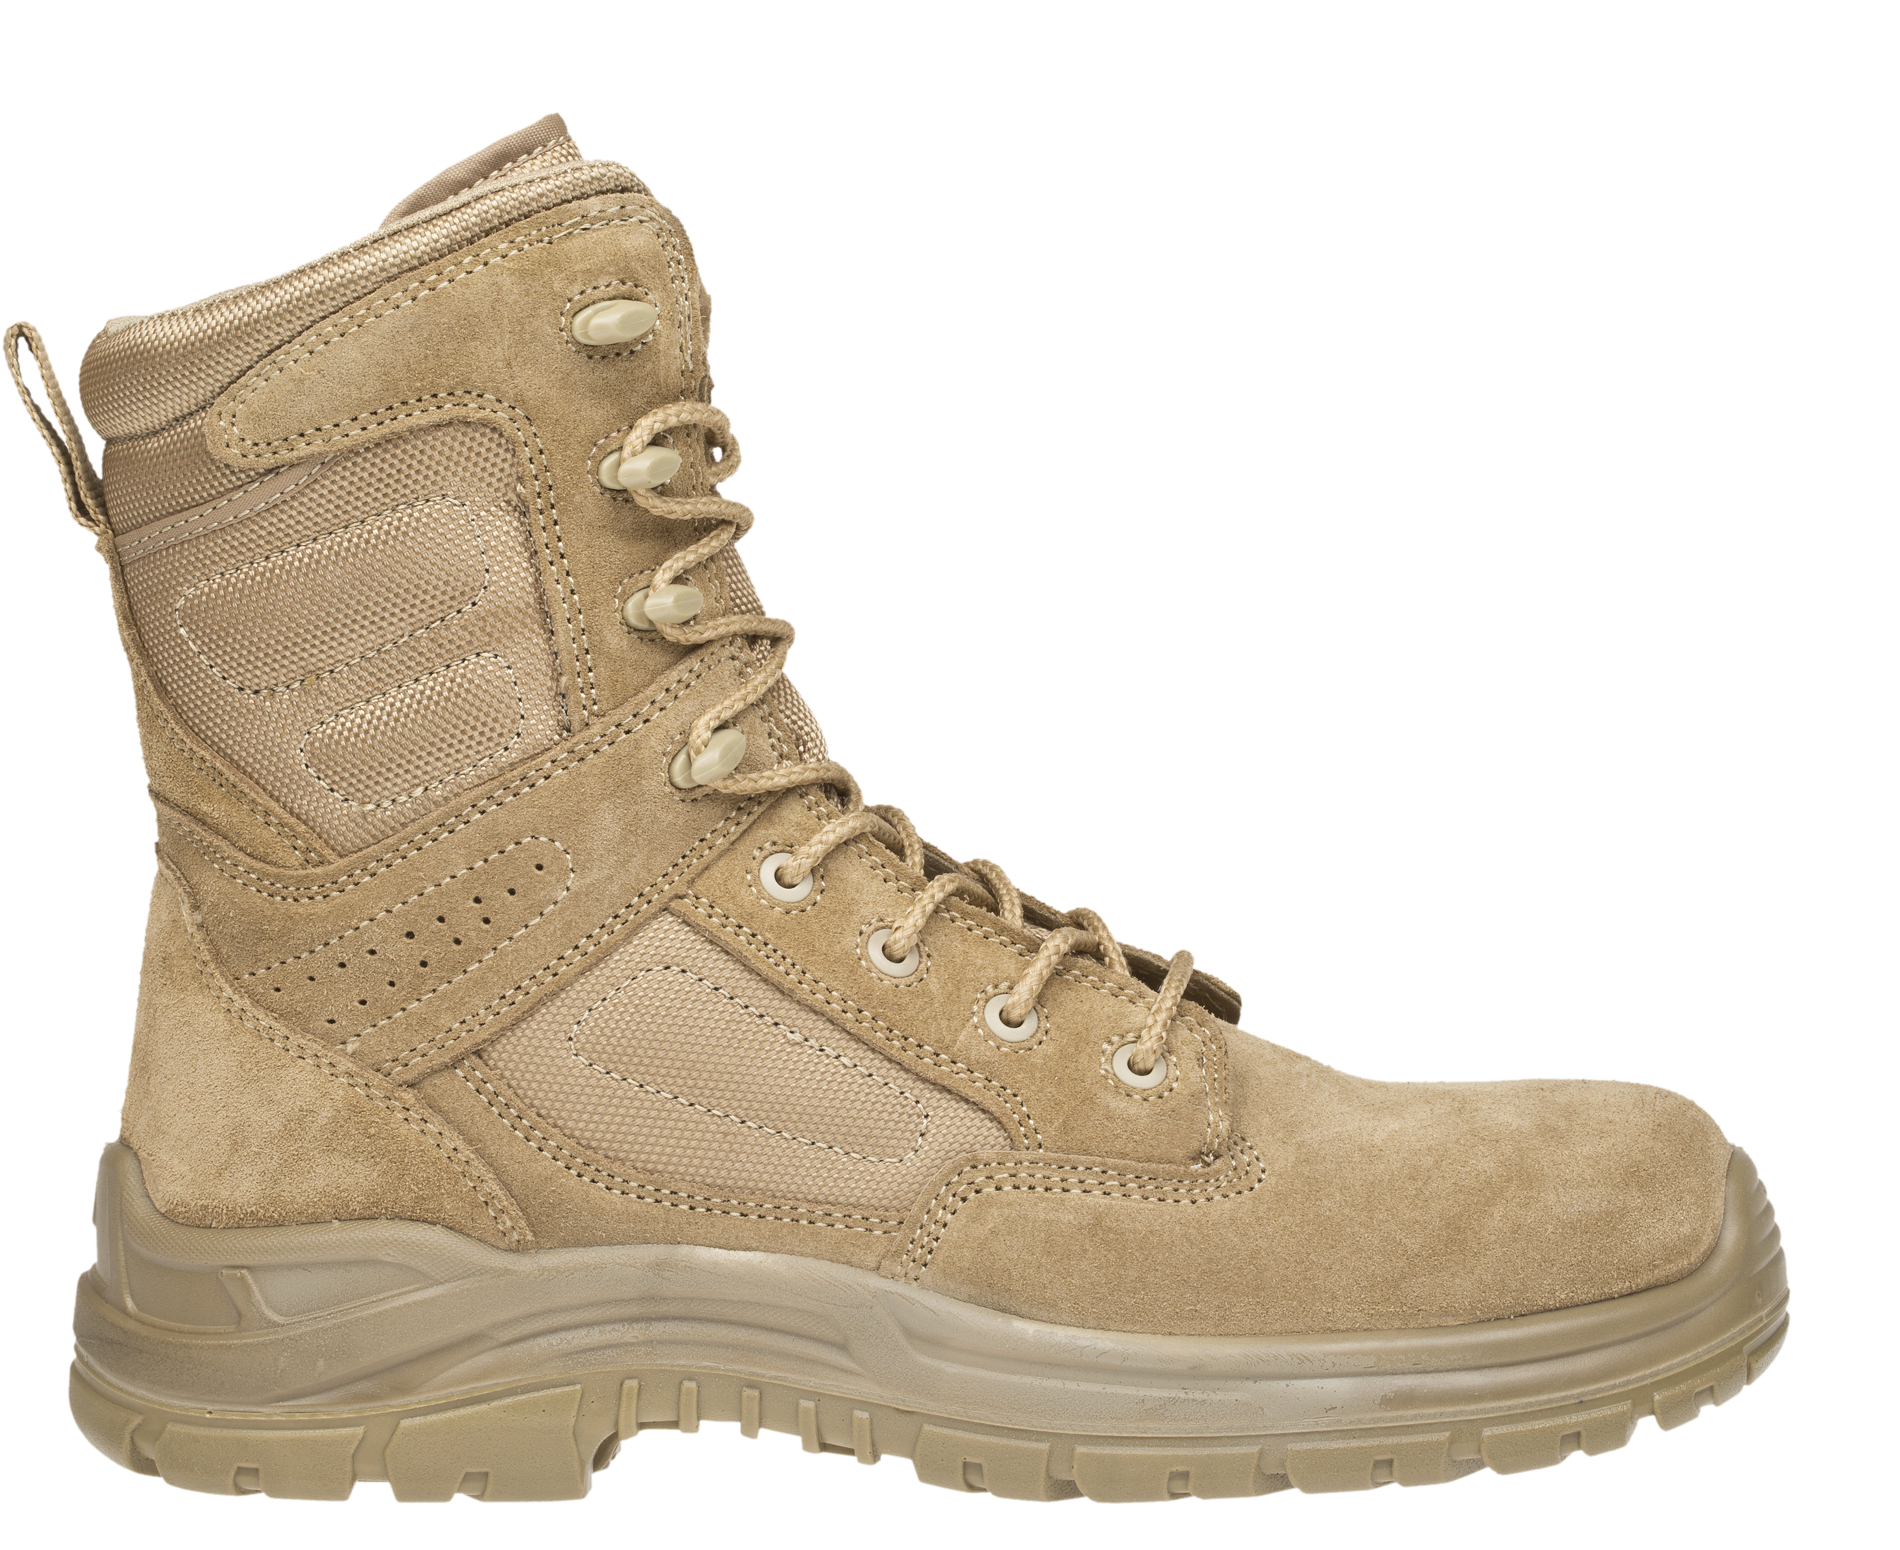 BENNON - BNN DESERT LIGHT O1 BOOT